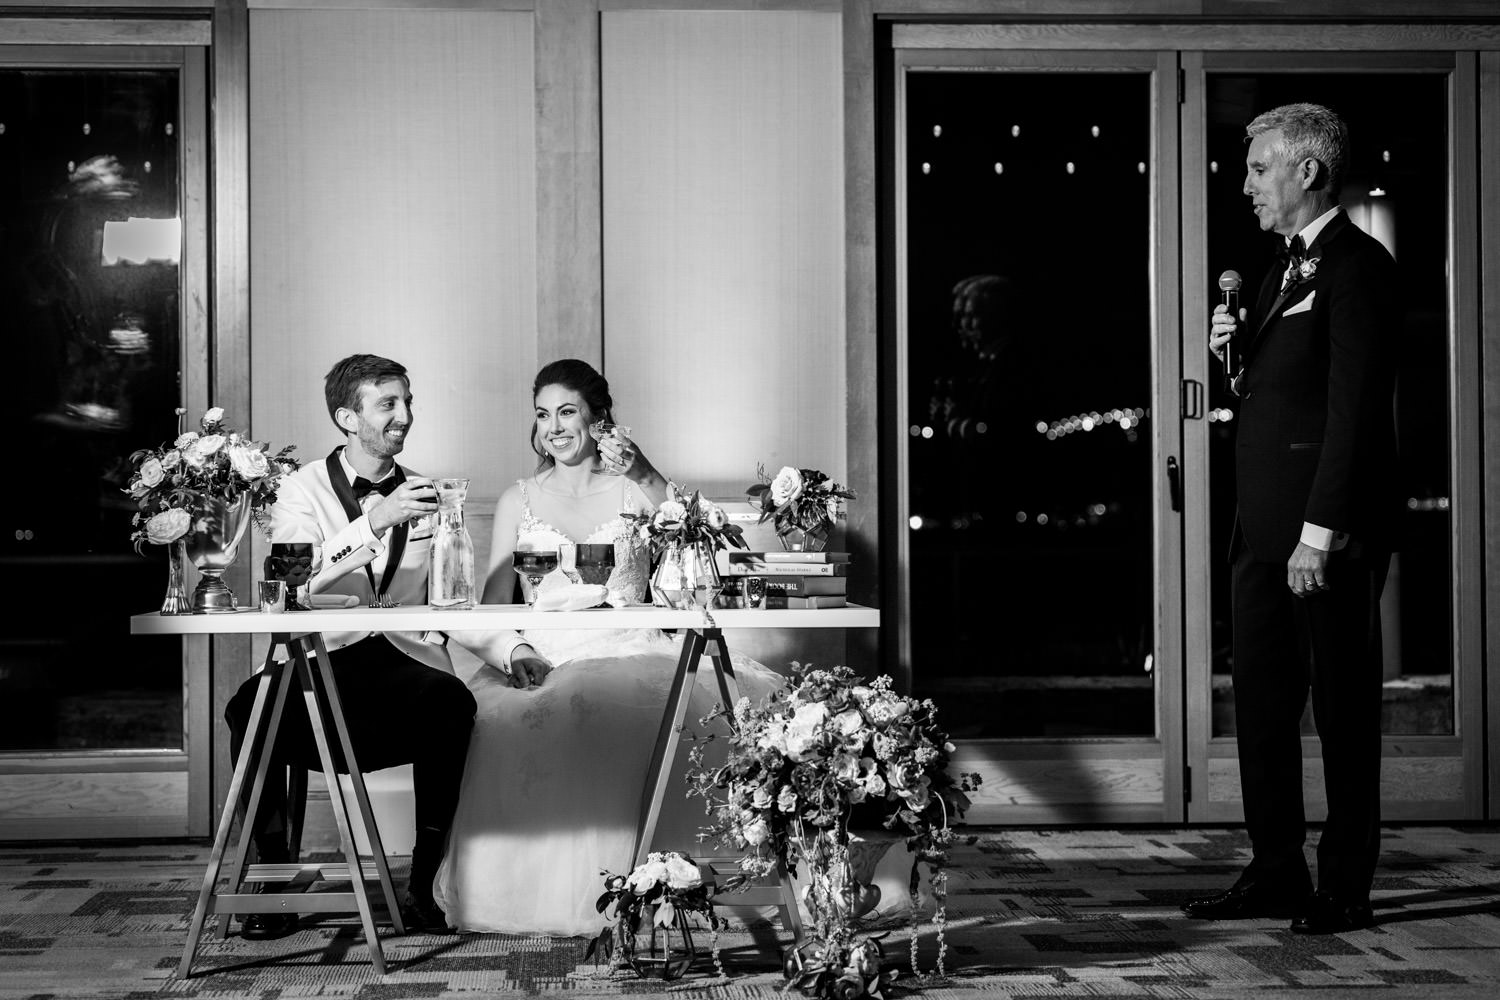 Bride and groom toasts at their wedding reception at the Coronado Community Center, Cavin Elizabeth Photography